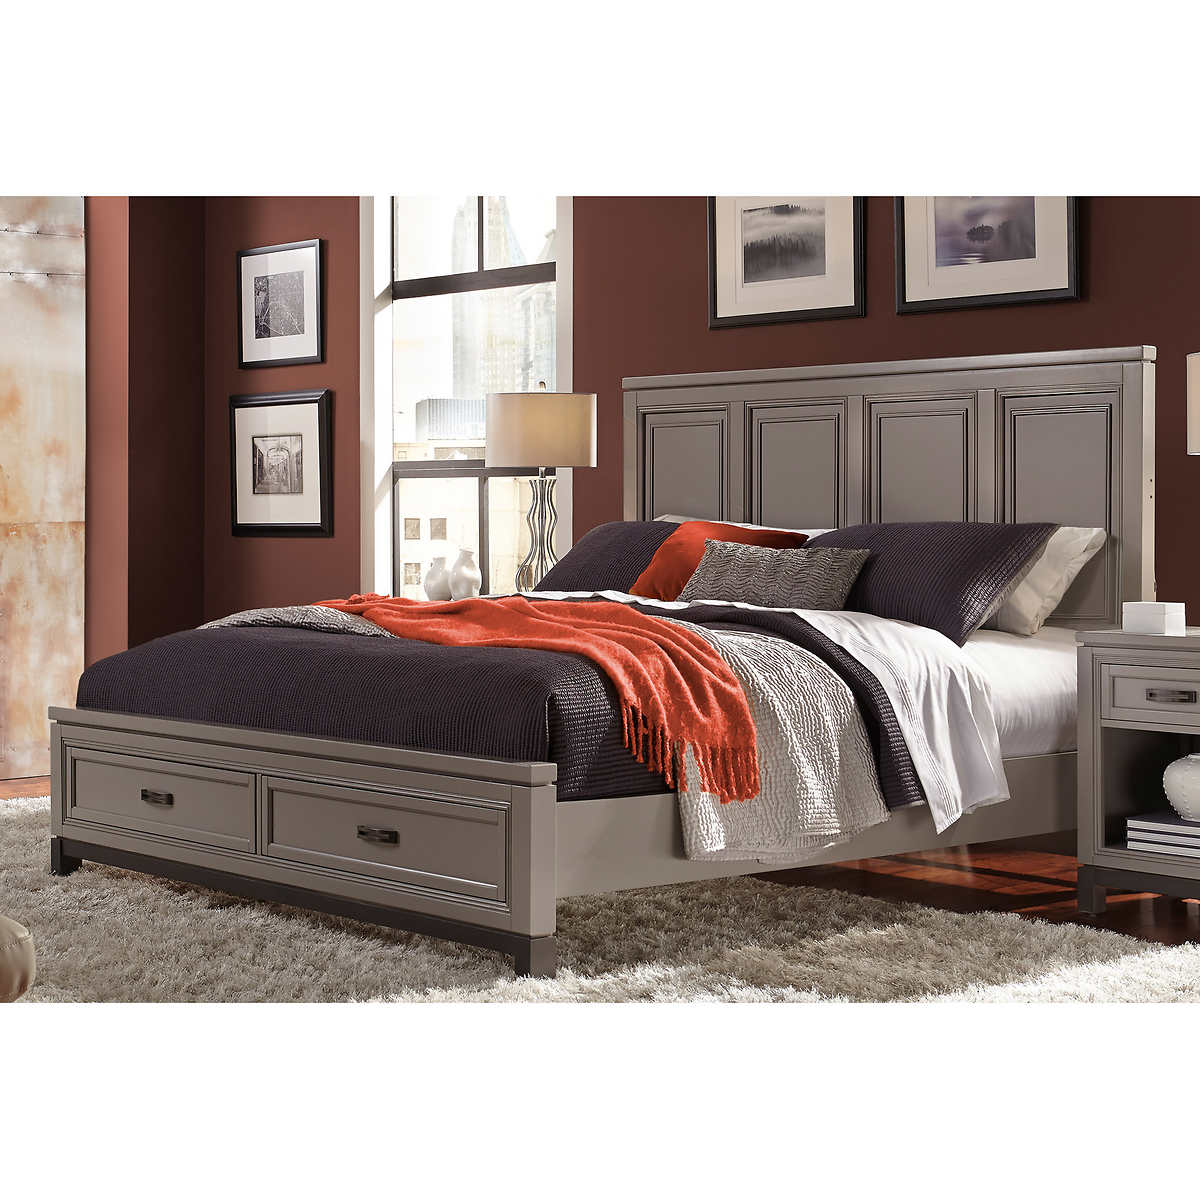 Bedroom Furniture King beds | costco